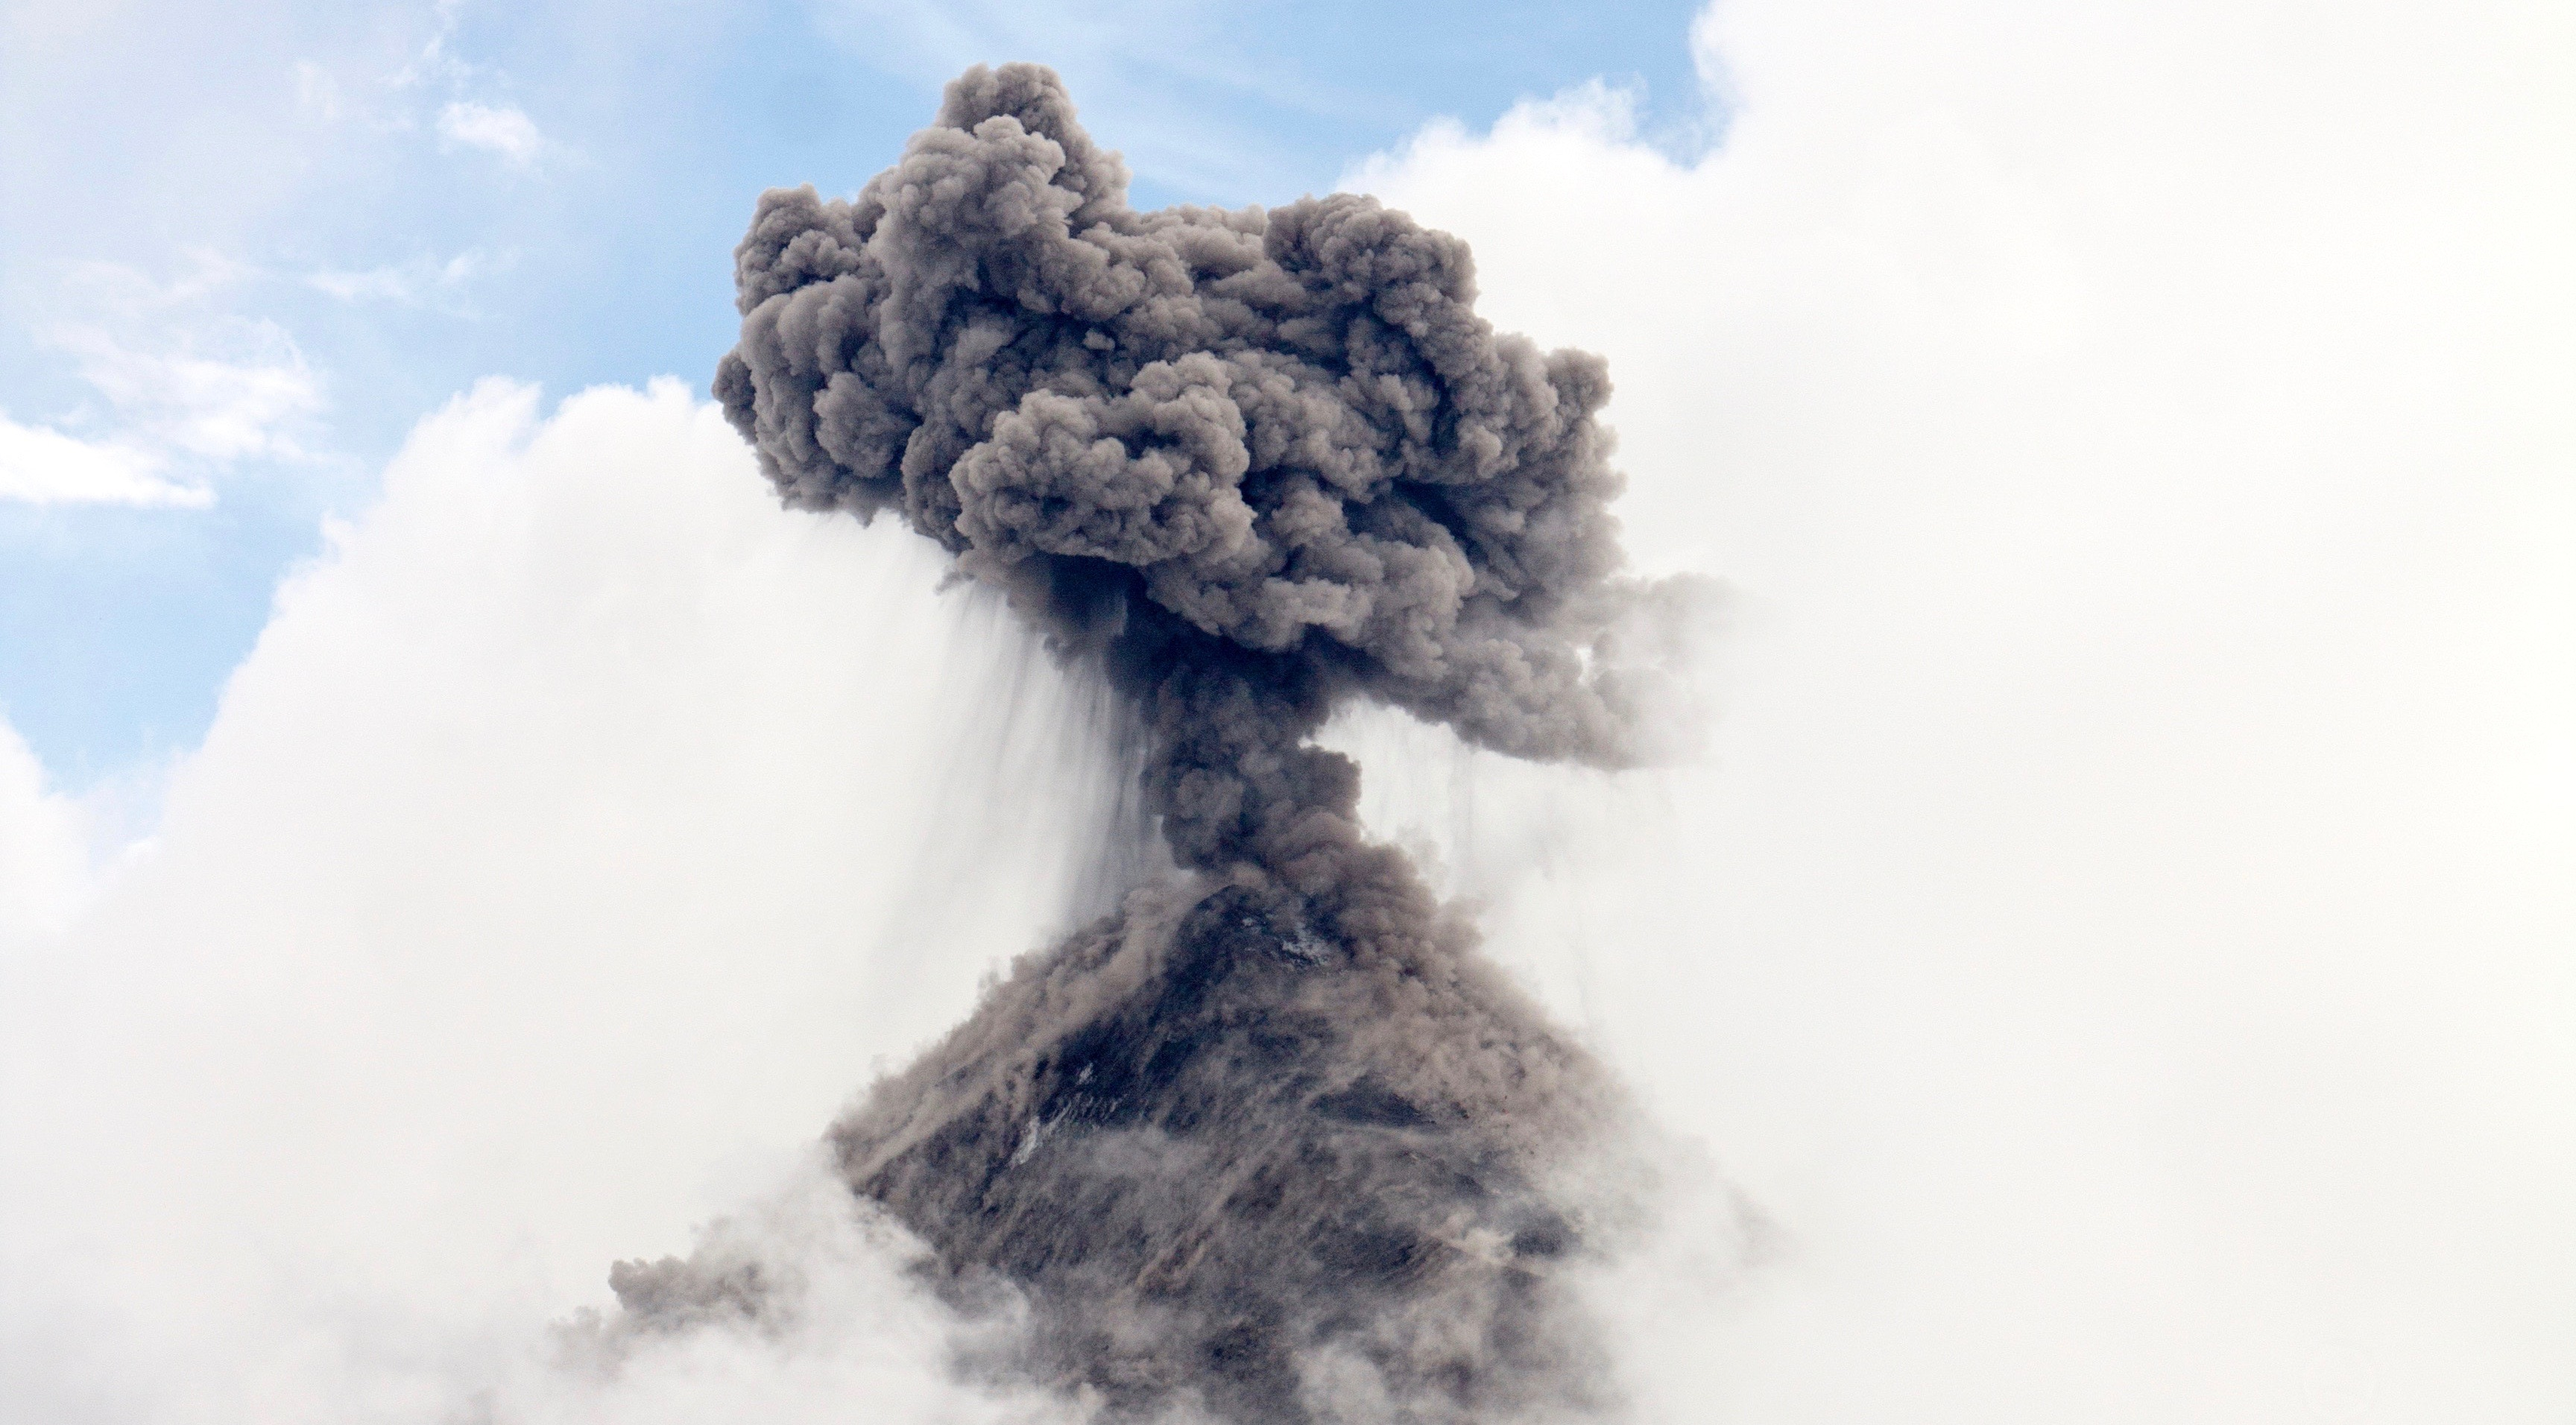 volcano erupting in cloud